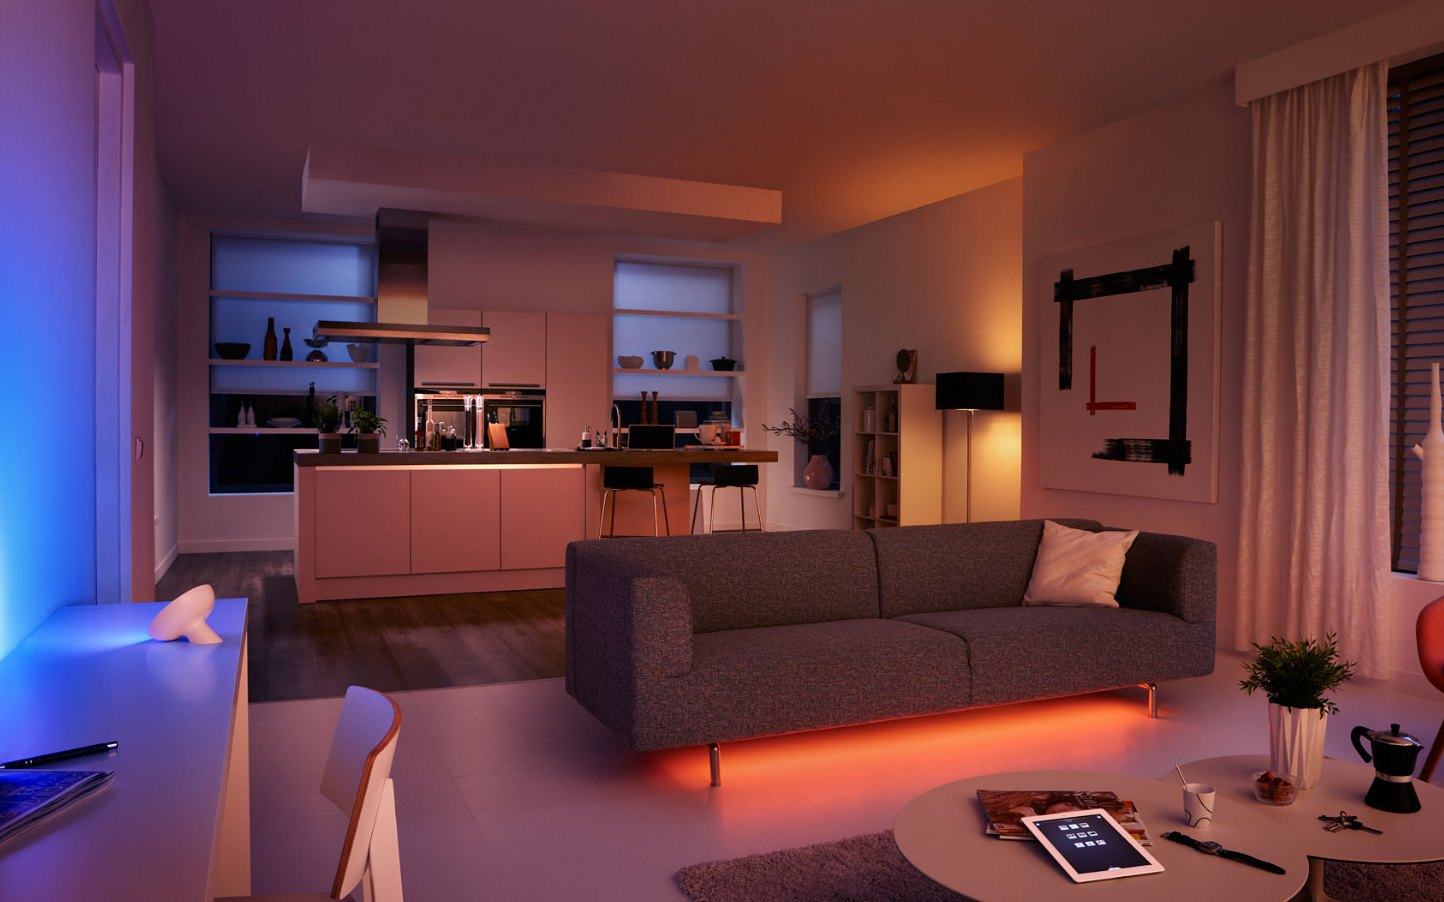 Smart LED Lights: Buying Options for Your Home